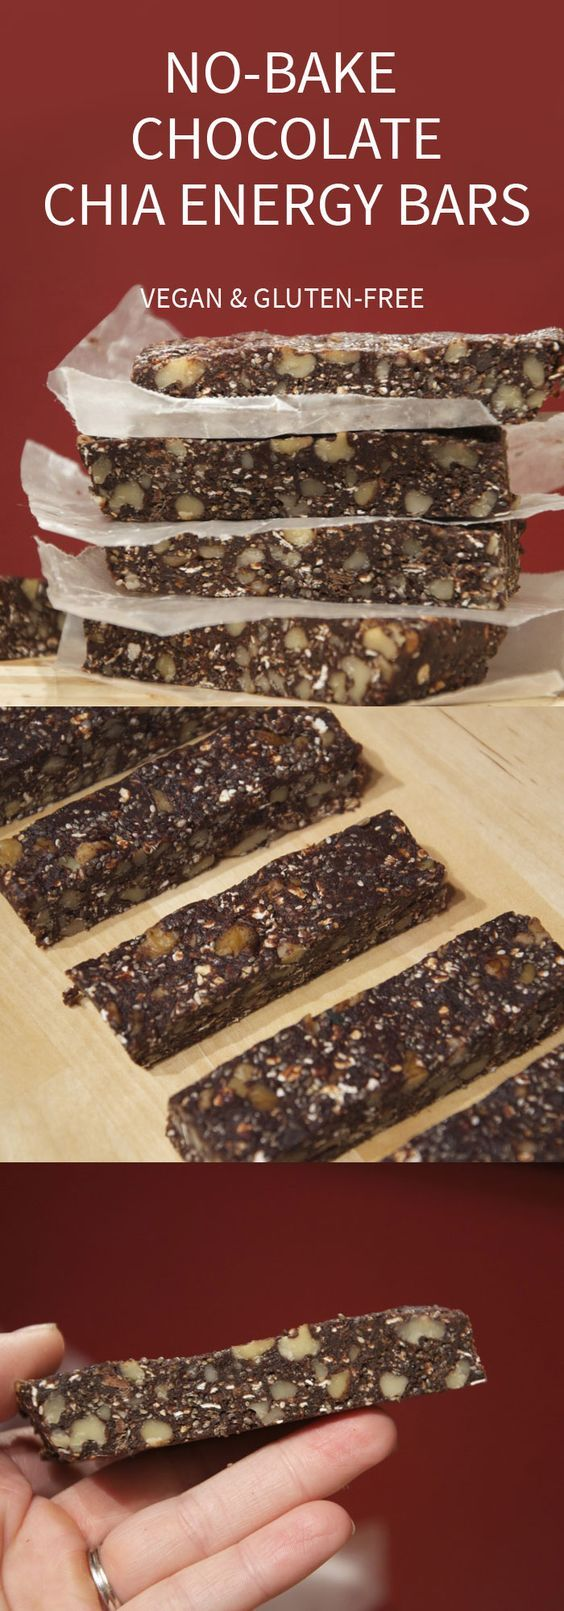 No-Bake Chocolate Chia Bars with Walnuts - Vegan and Gluten-Free: